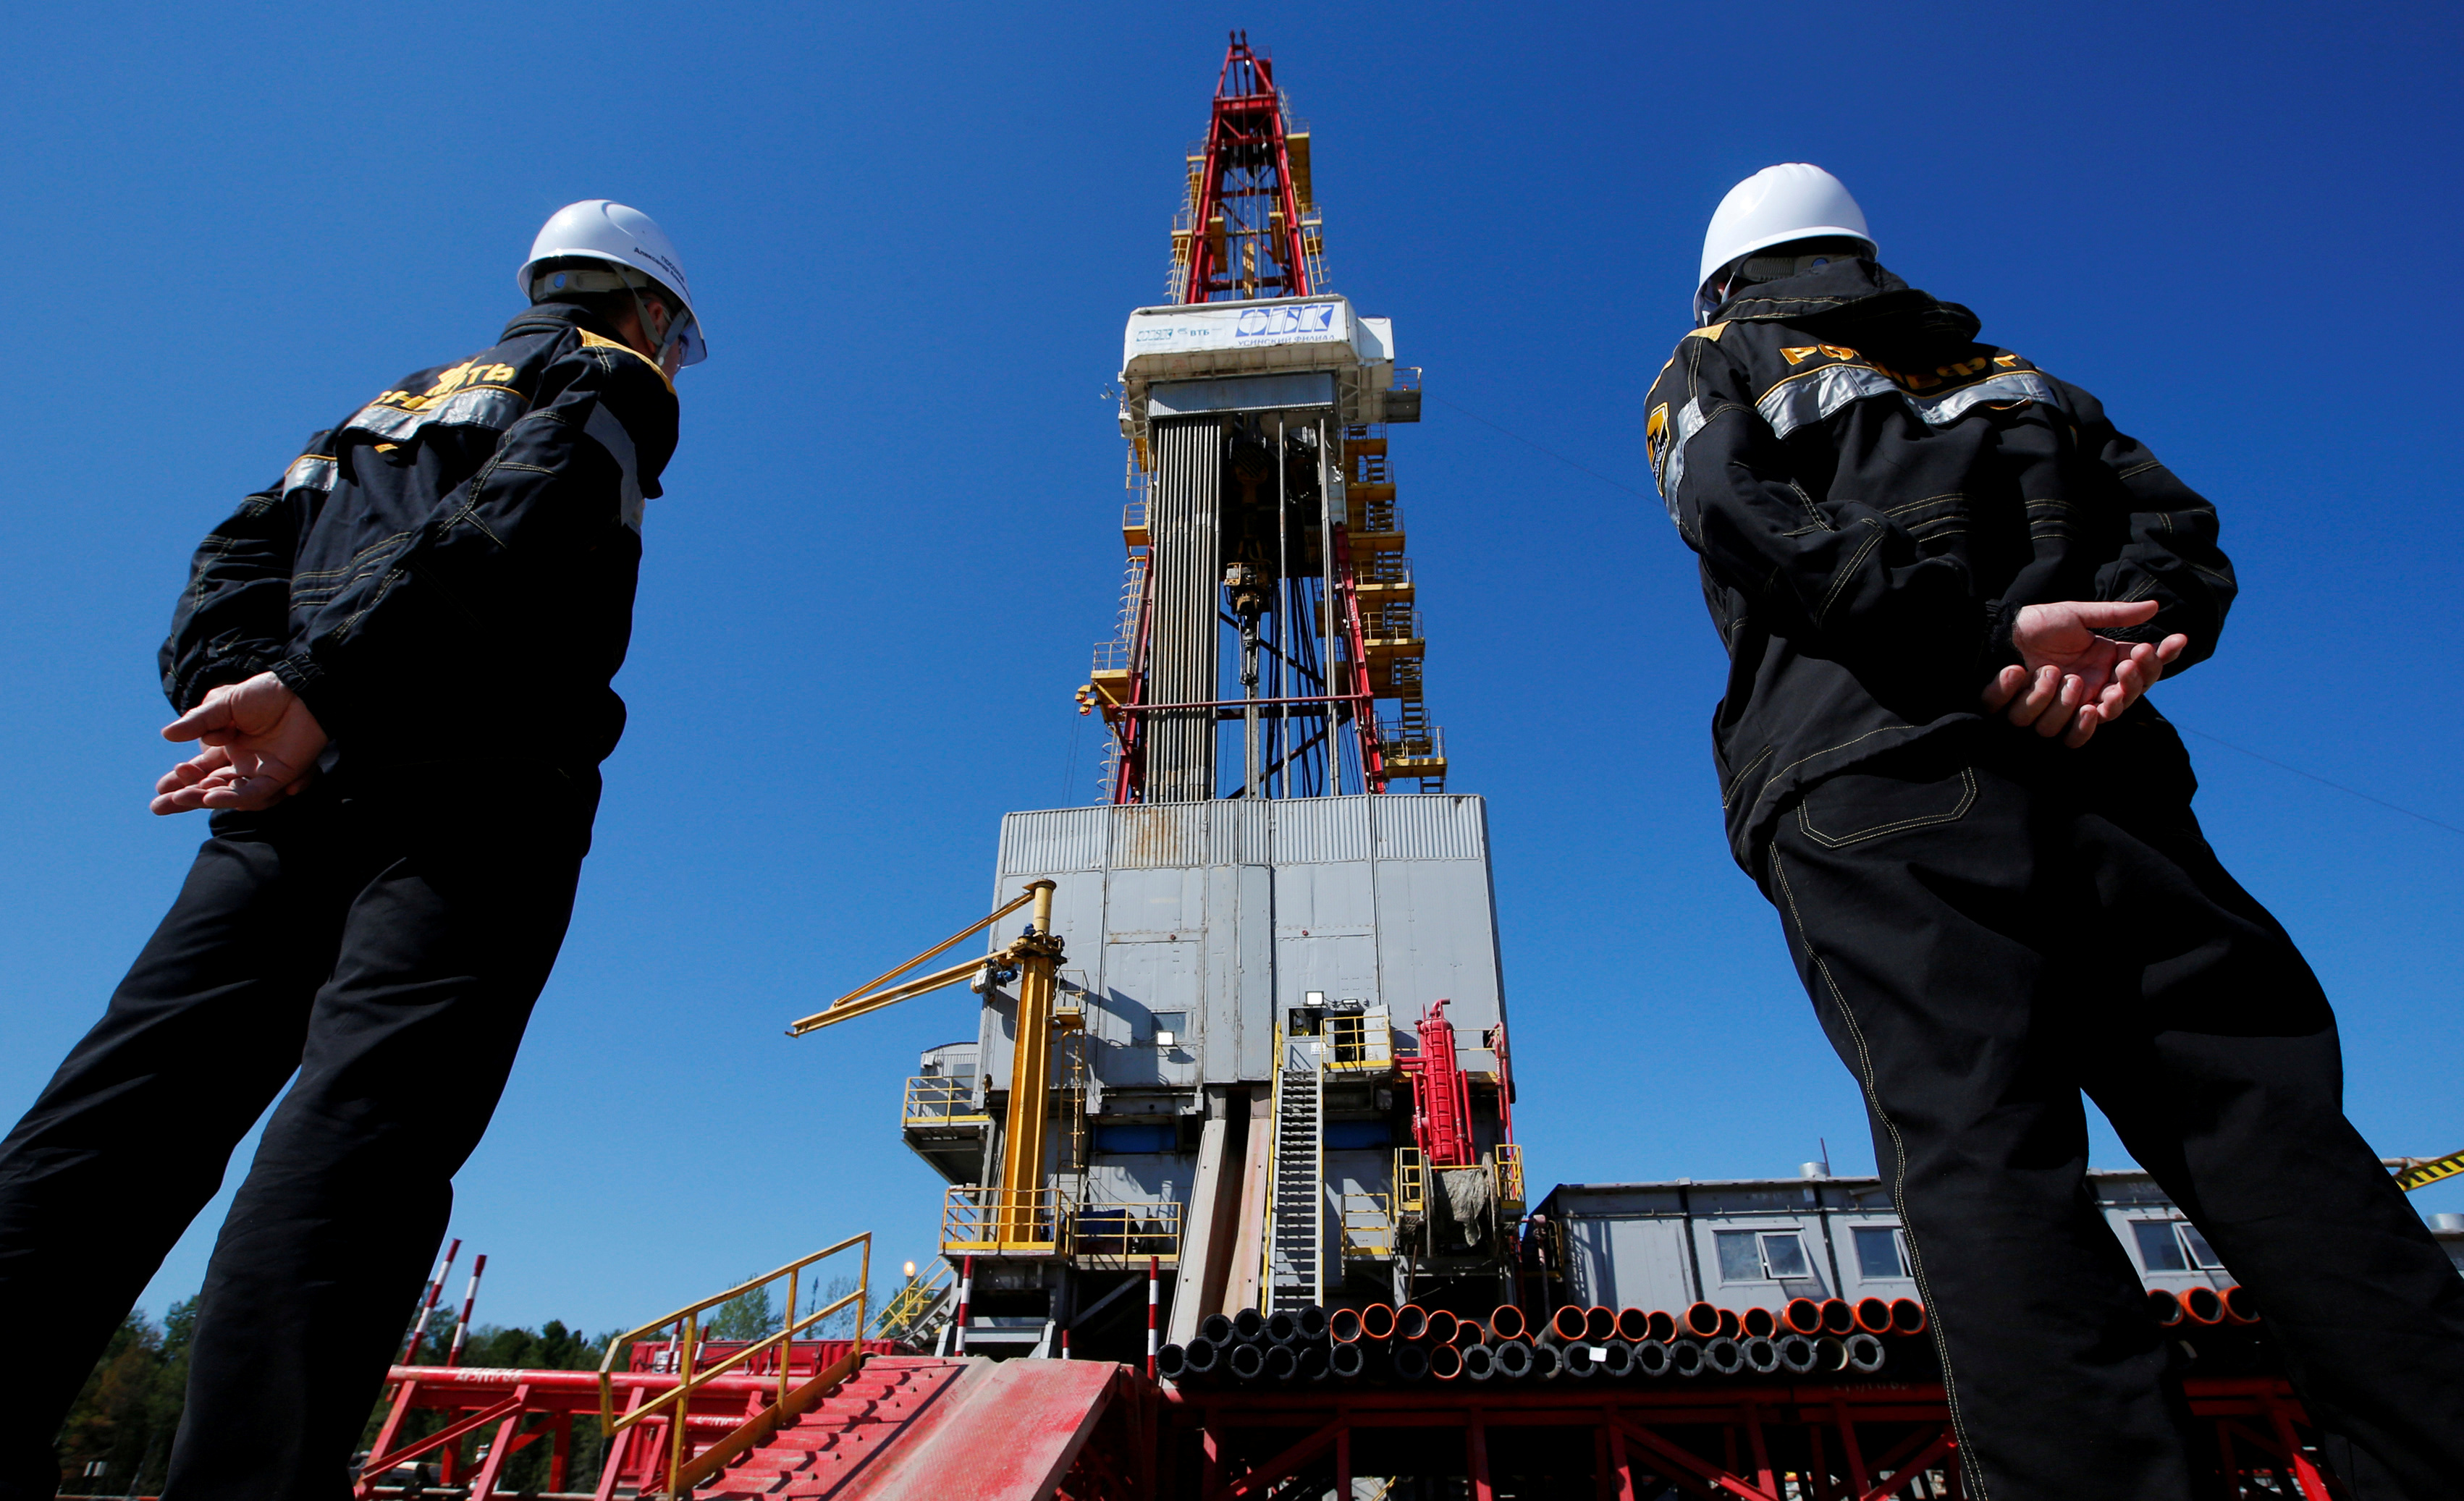 Russia's Energy Diplomacy Brings Geopolitical Dividends